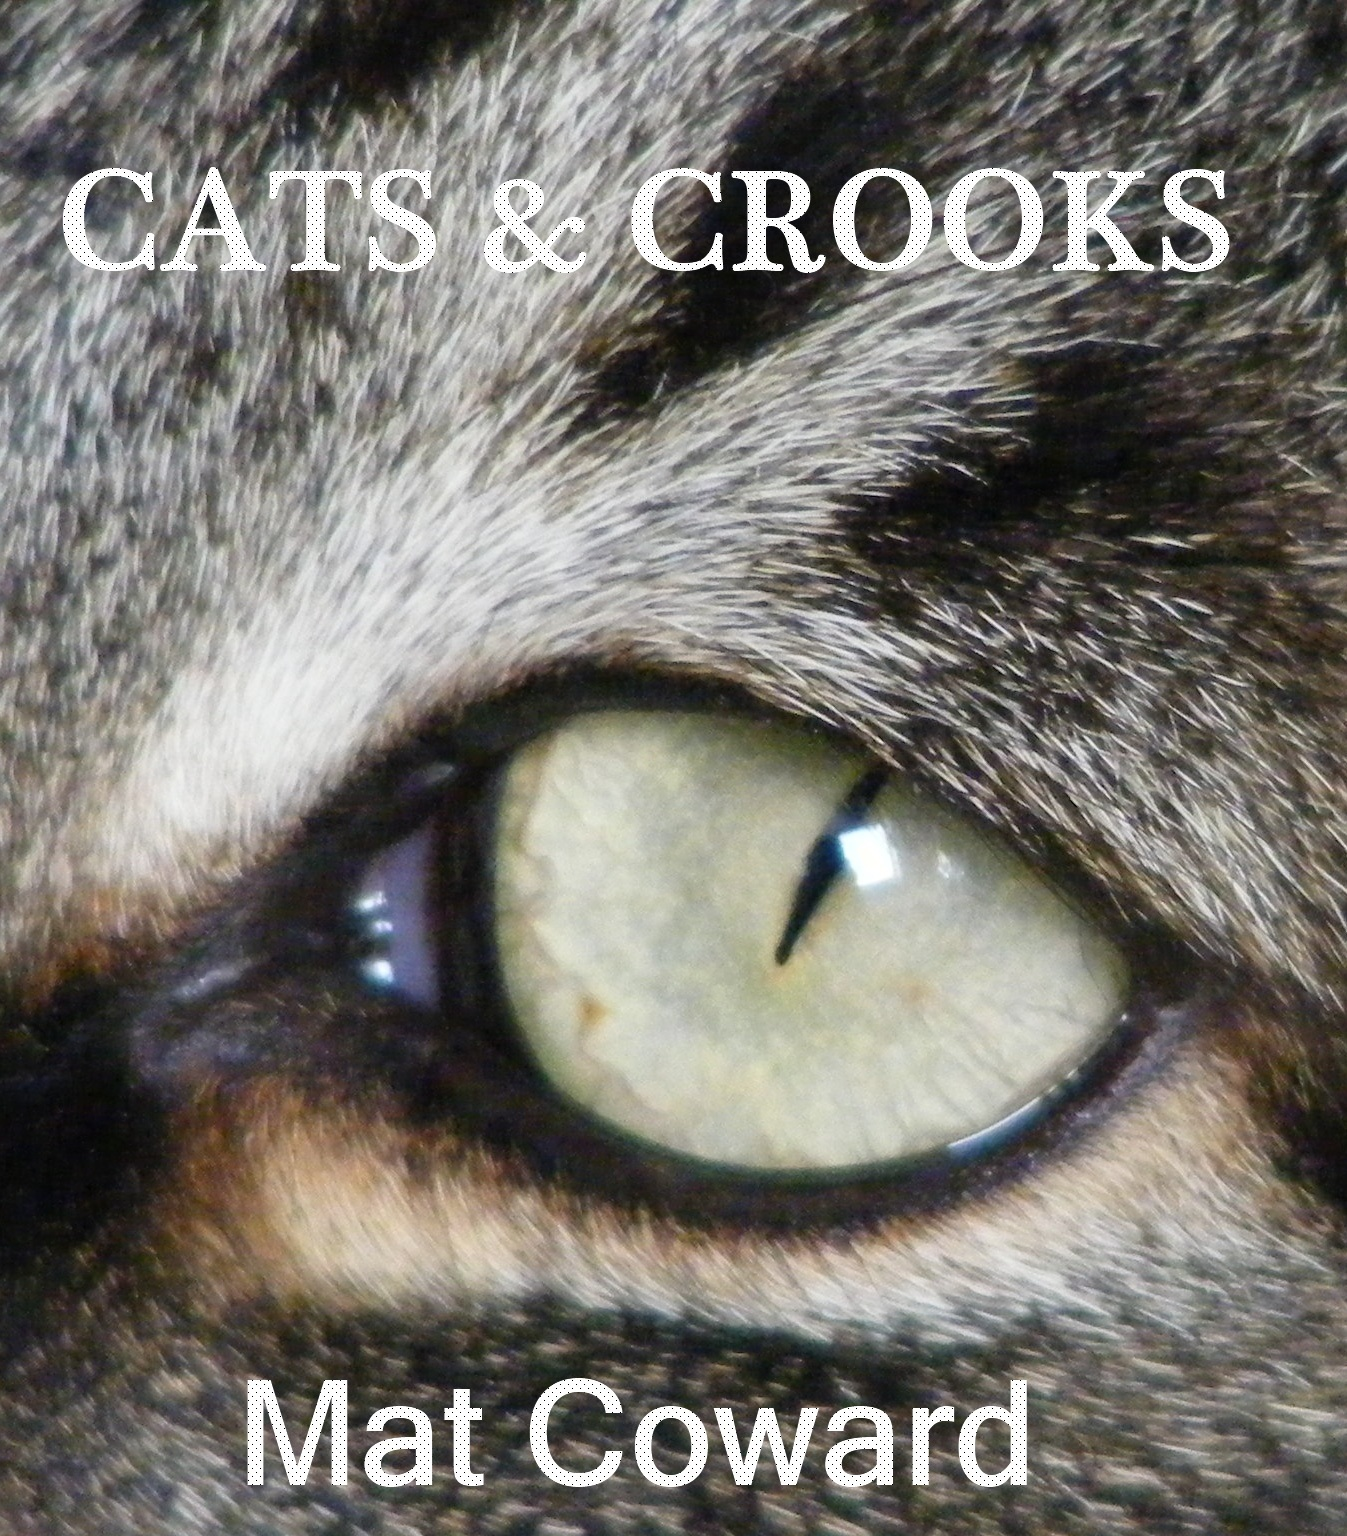 Cats & Crooks